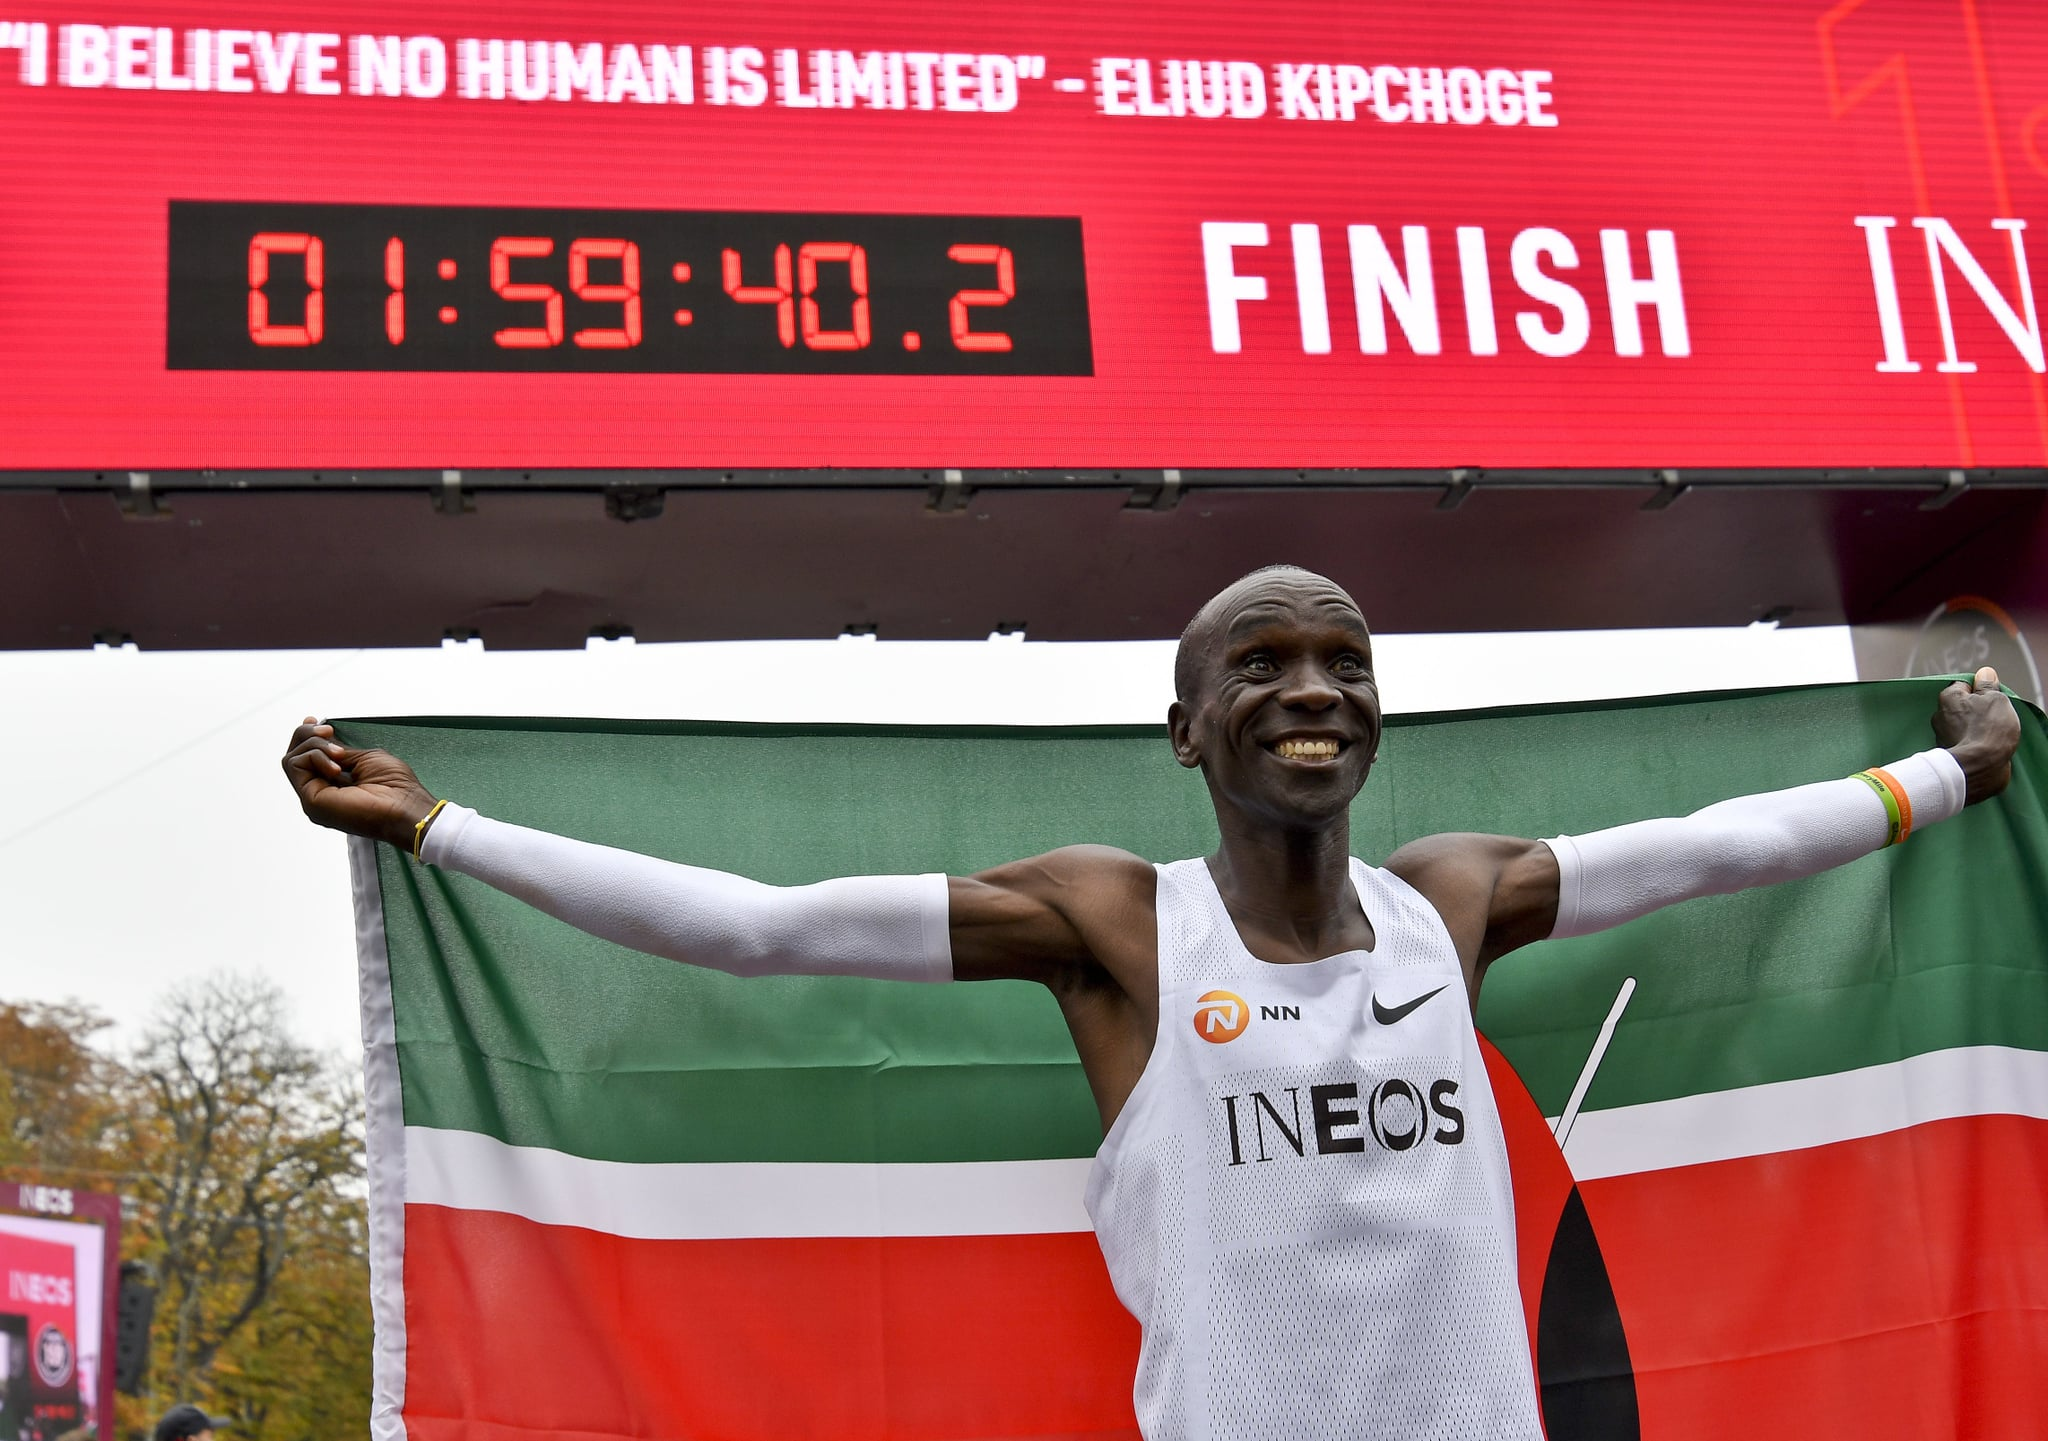 TOPSHOT - Kenya's Eliud Kipchoge (white jersey) celebrates after busting the mythical two-hour barrier for the marathon on October 12 2019 in Vienna. - Kipchoge holds the men's world record for the distance with a time of 2hr 01min 39sec, which he set in the flat Berlin marathon on September 16, 2018.He tried in May 2017 to break the two-hour barrier, running on the Monza National Autodrome racing circuit in Italy, failing narrowly in 2hr 00min 25sec. (Photo by HERBERT NEUBAUER / APA / AFP) / Austria OUT (Photo by HERBERT NEUBAUER/APA/AFP via Getty Images)